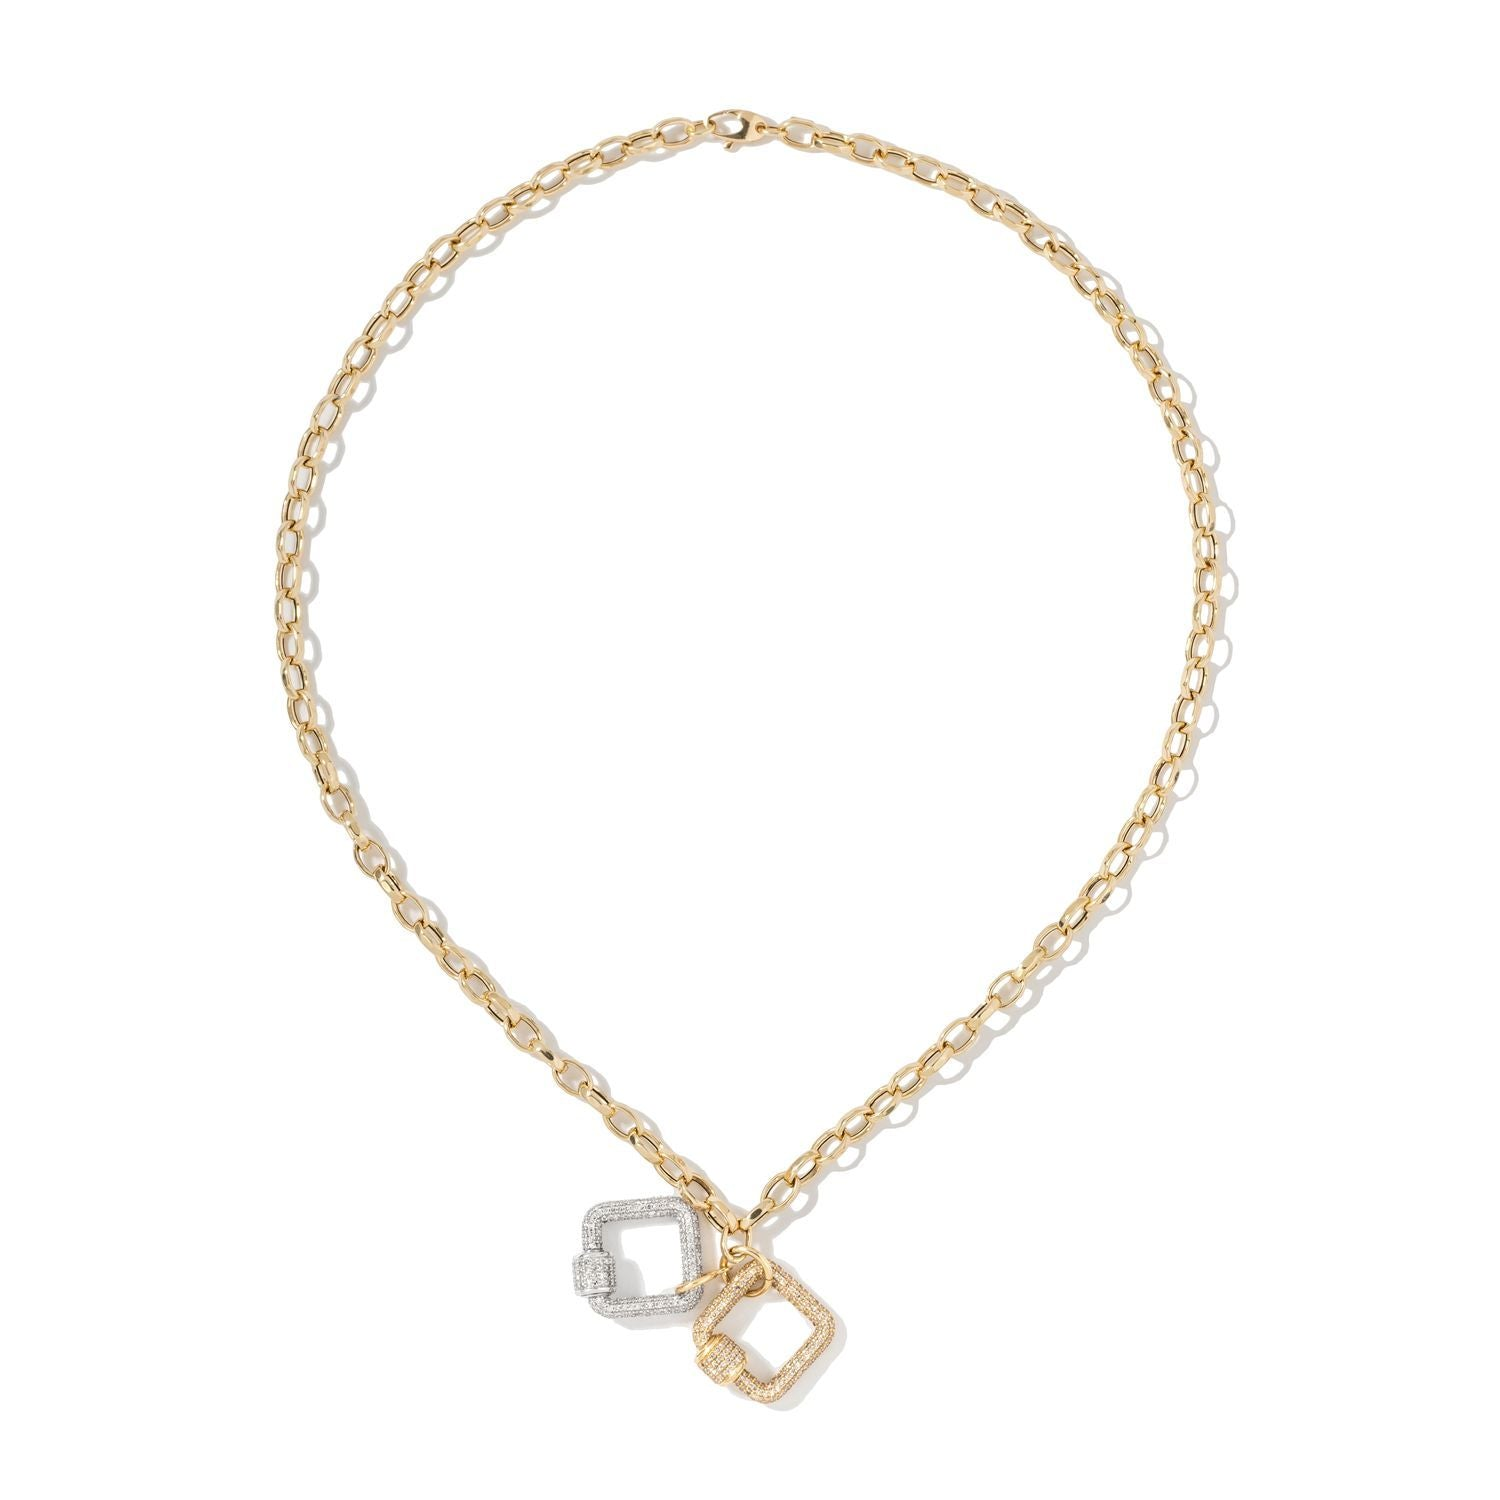 White & Yellow Square Carabiners on Oval Chain Necklace